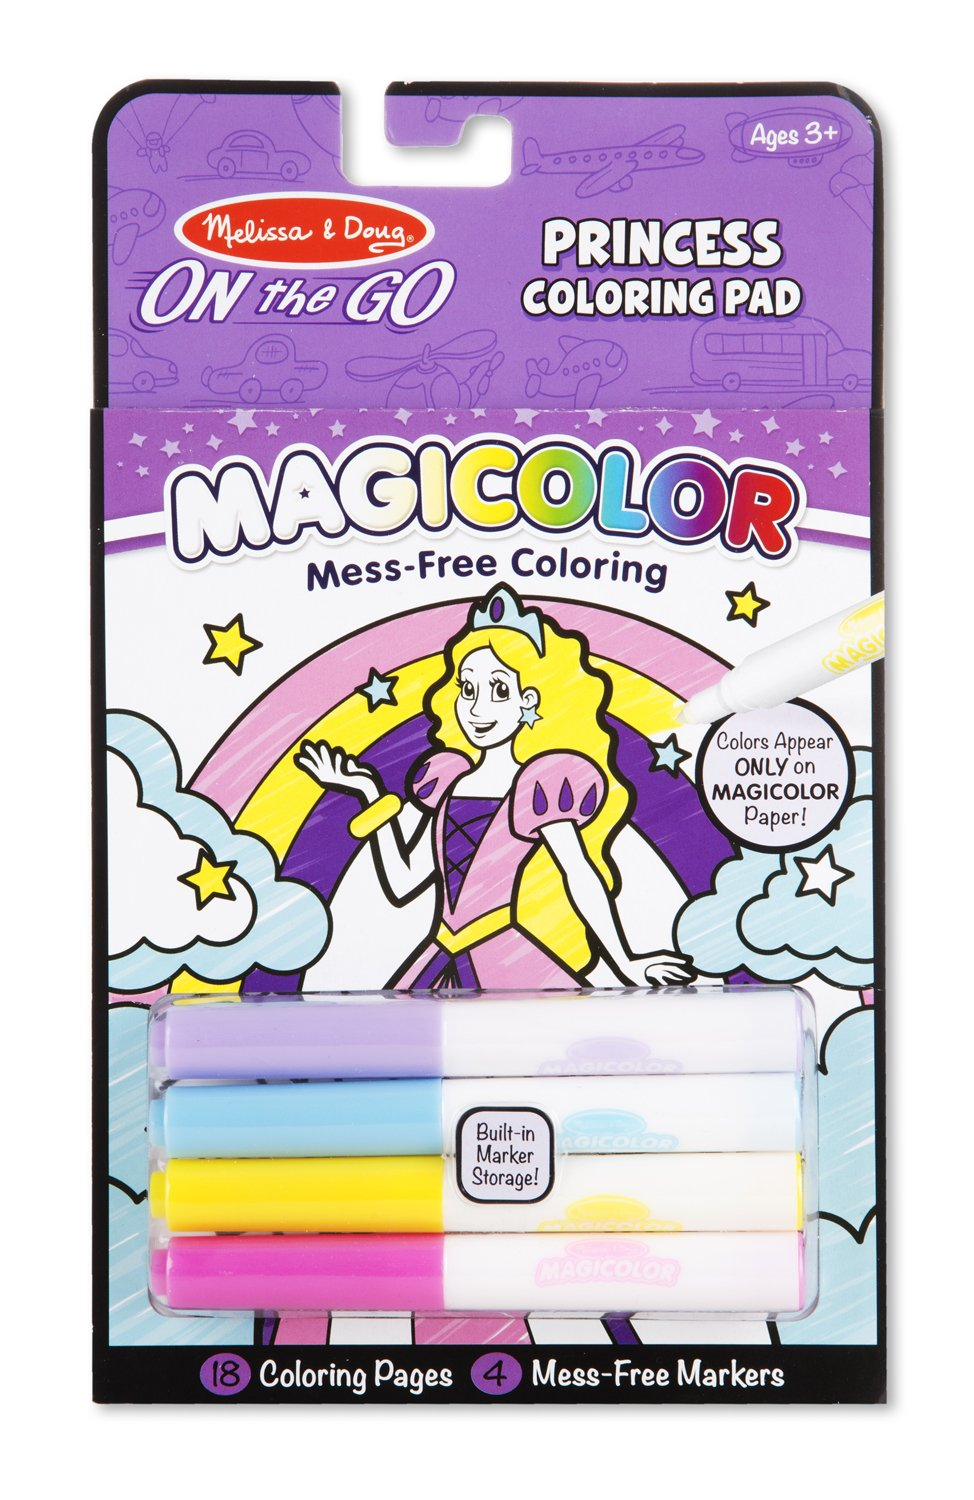 Melissa & Doug On the Go Magicolor Coloring Pad - Princess (18 Pages) Toy Melissa and Doug 9136